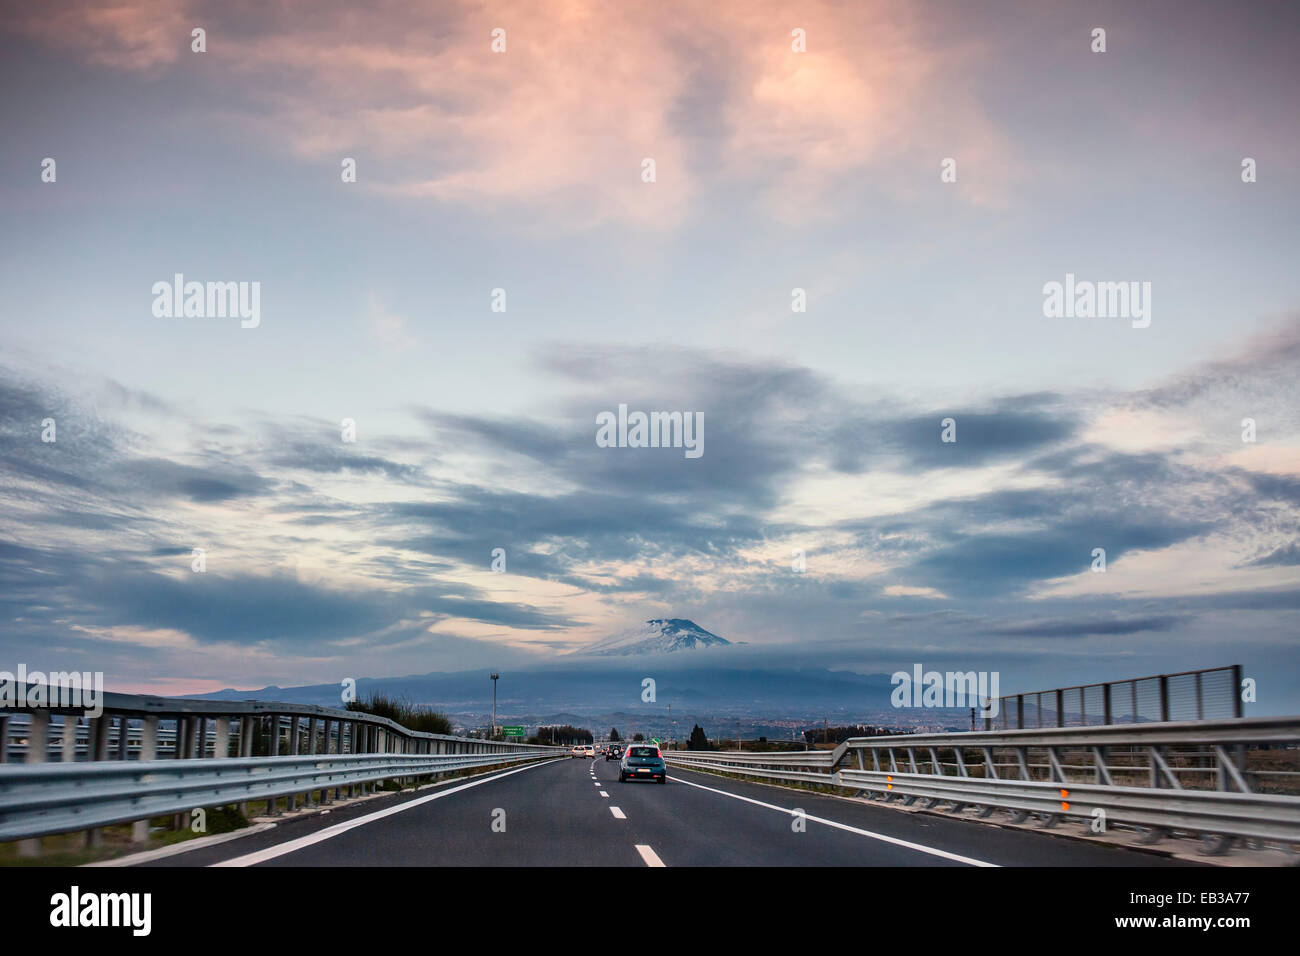 Italy, Sicily, Catania, View along highway with Mount Etna on horizon - Stock Image